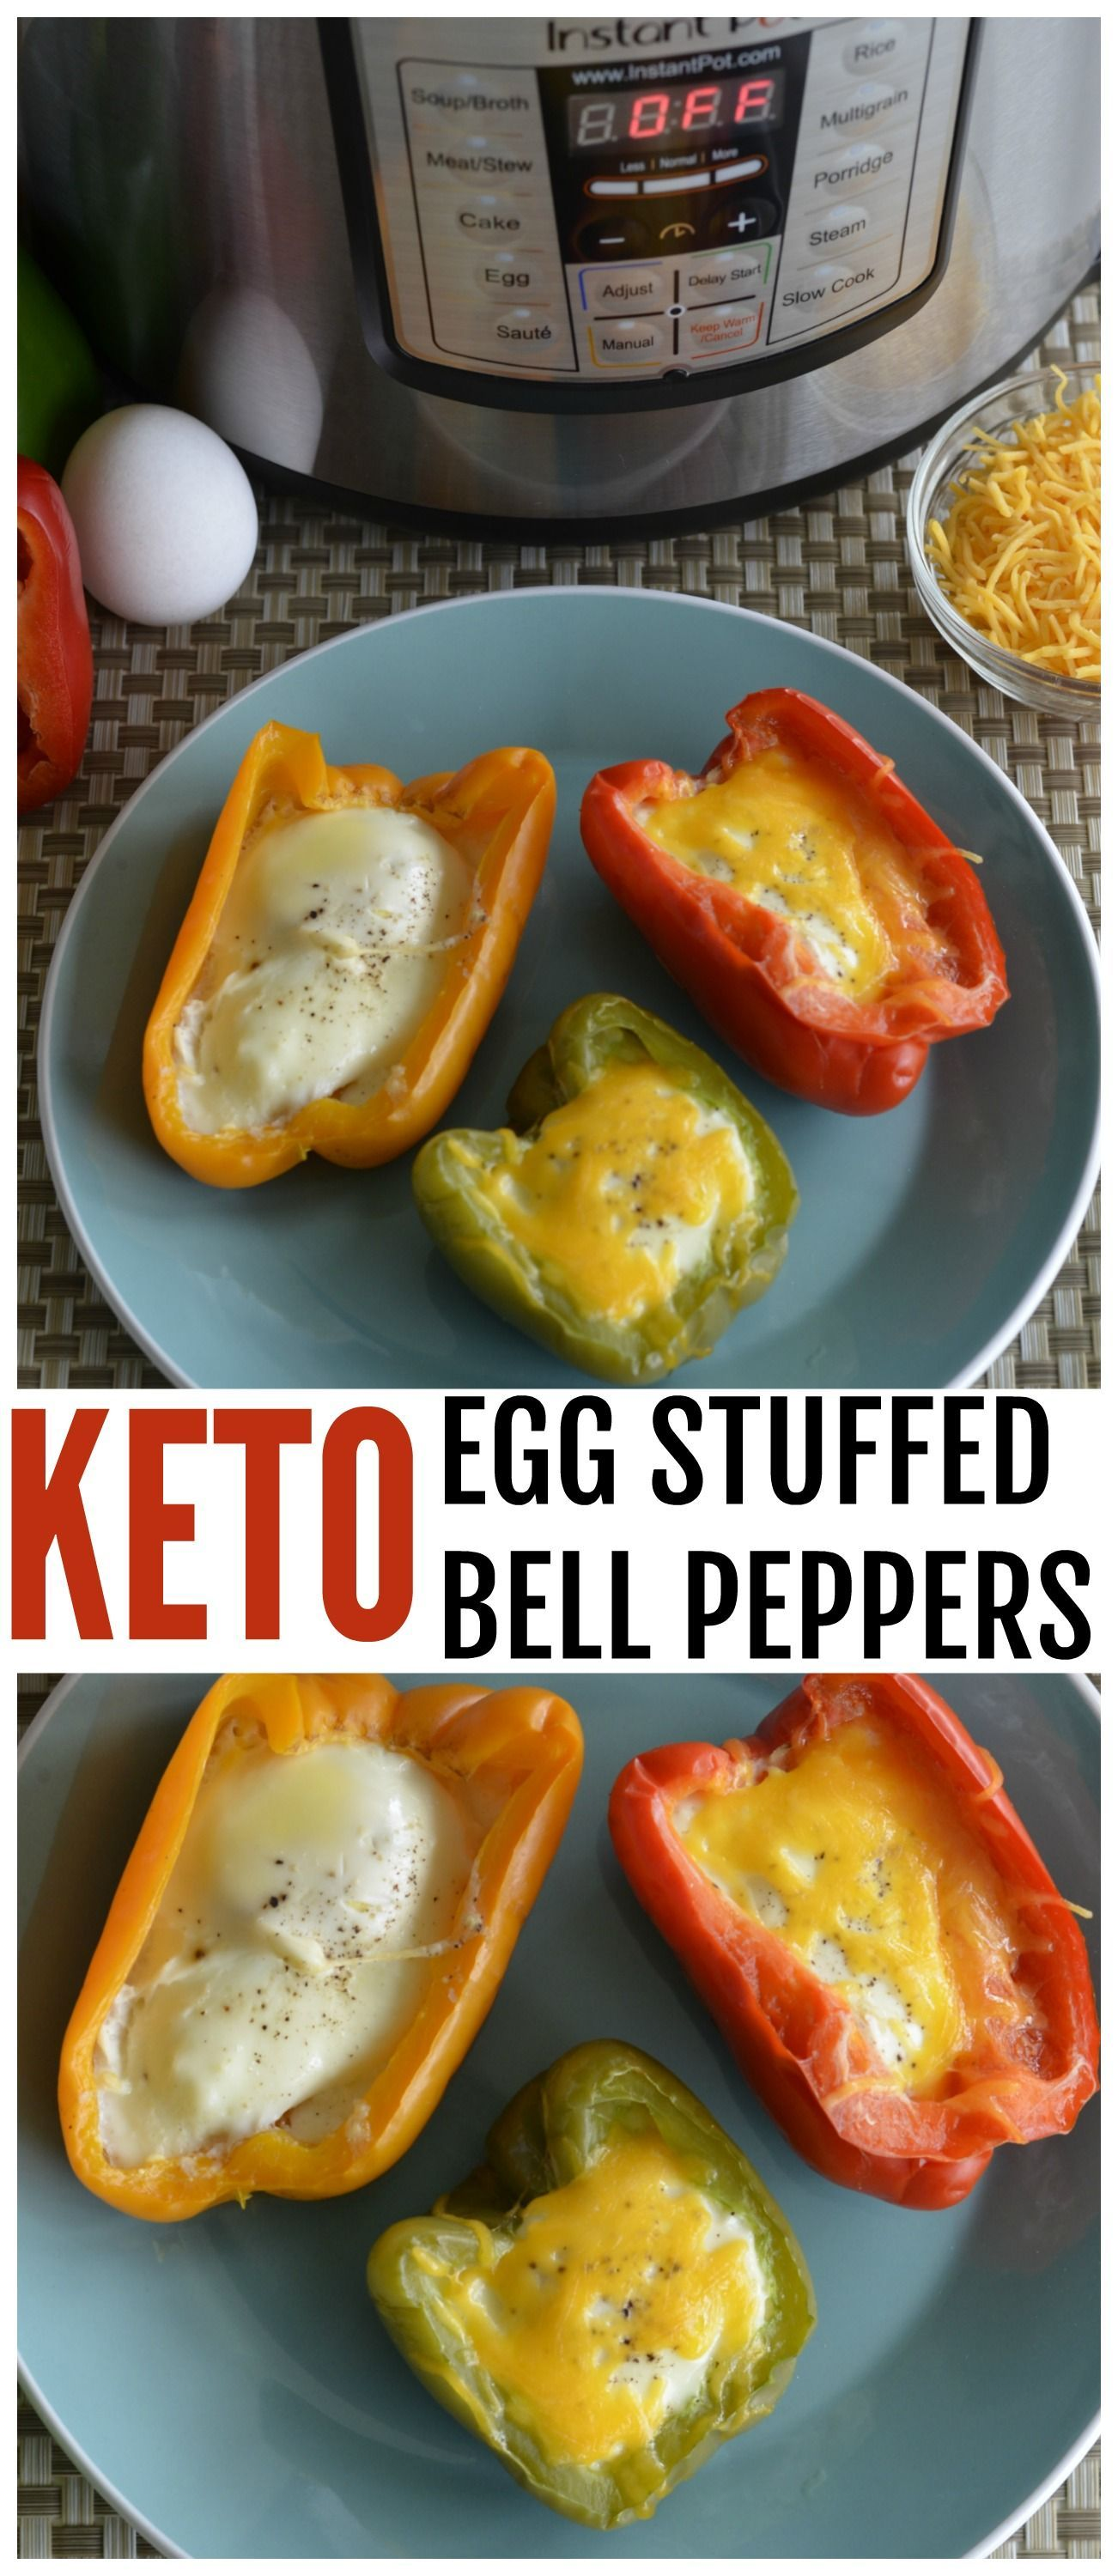 Keto Egg Stuffed Bell Peppers images